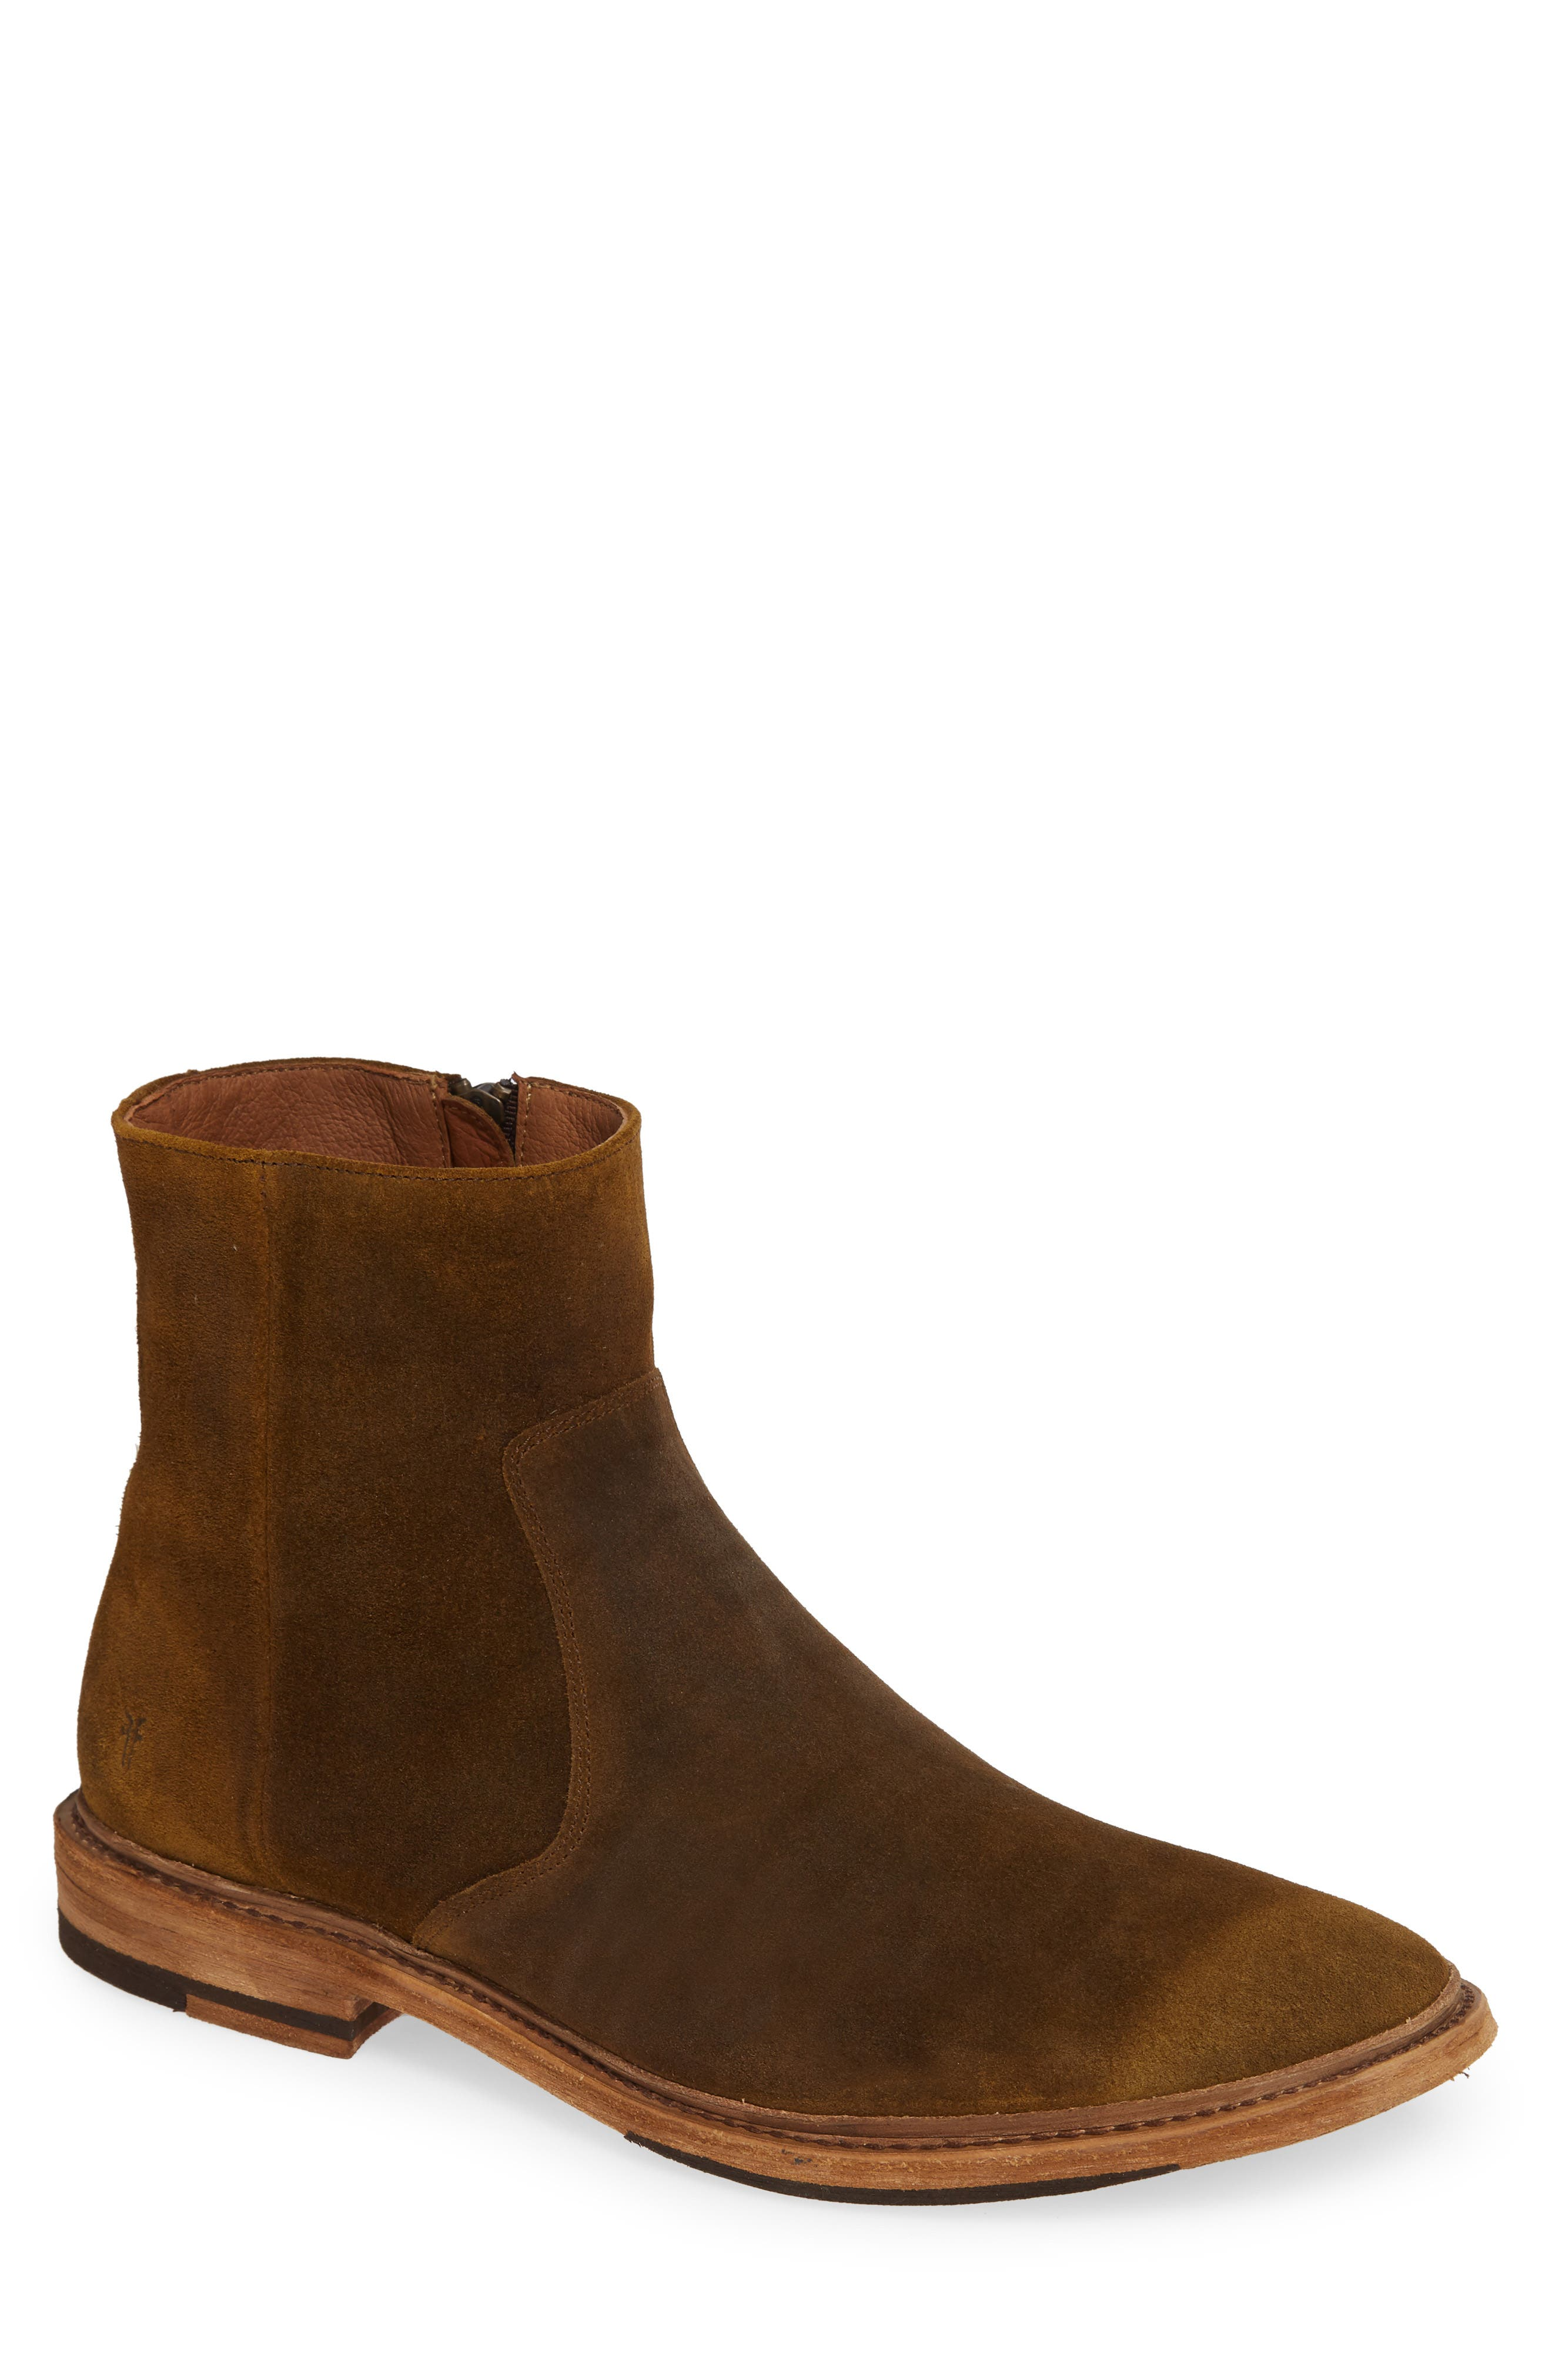 Paul Zip Boot,                         Main,                         color, TAN SUEDE